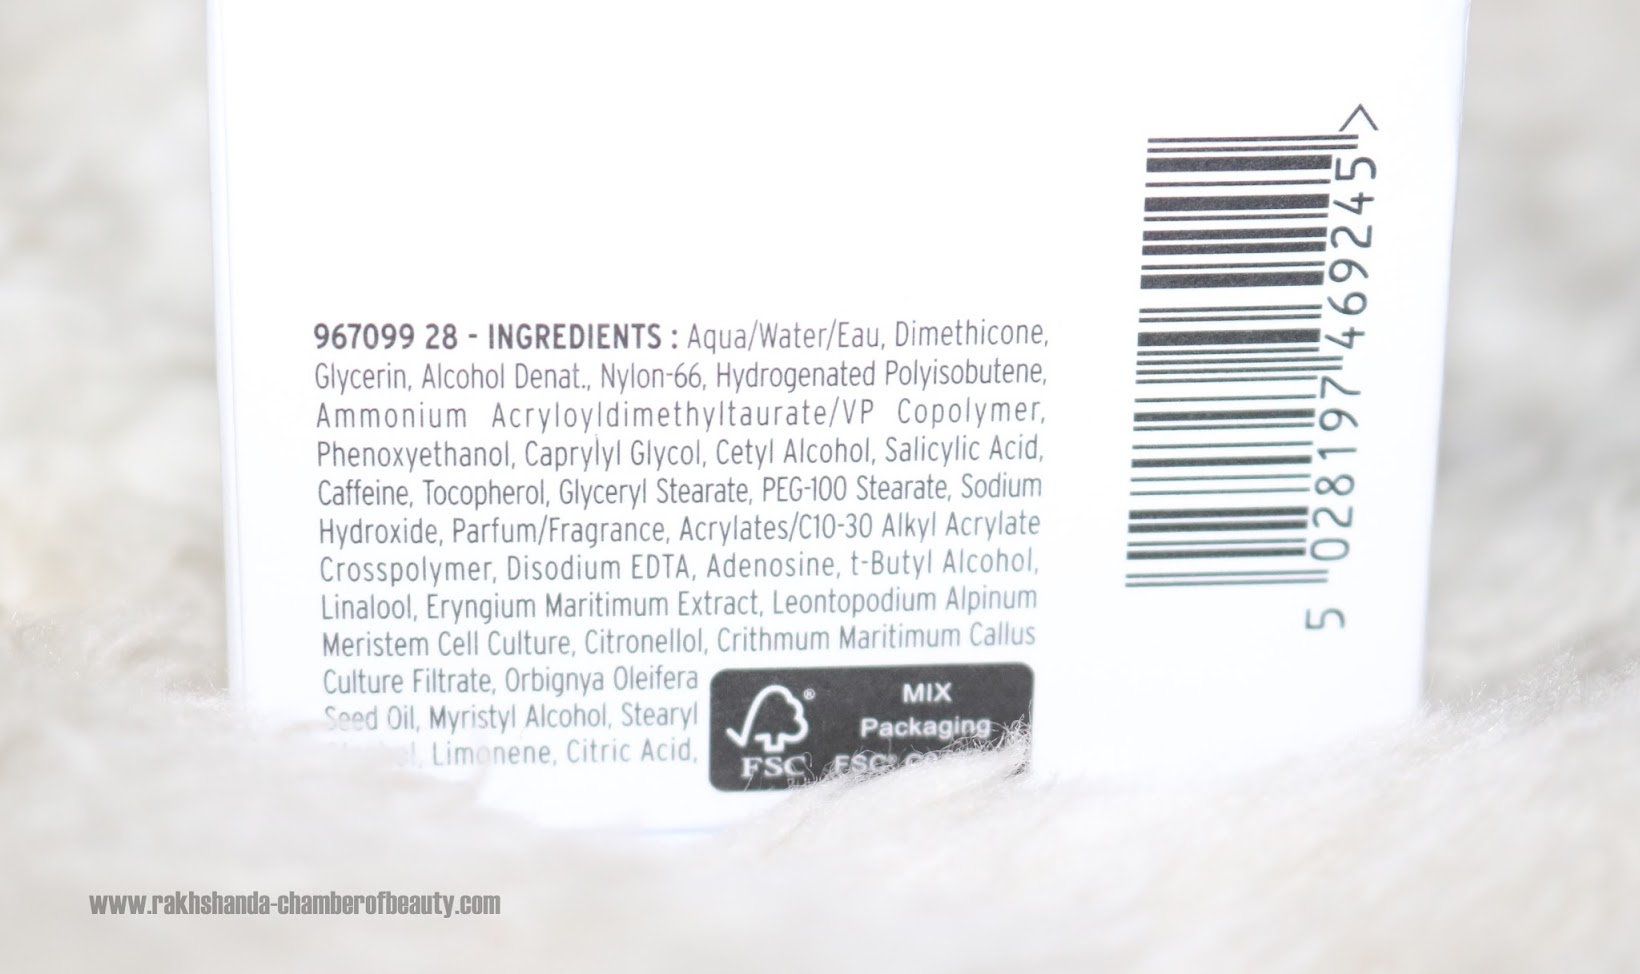 Ingredients, Indian beauty blogger, review, skincare, The Body Shop, The Body Shop Drops of Youth Day Cream review, The Body Shop Drops of Youth, best moisturizing creams in India, day cream, The Body Shop Drops of Youth day cream swatch